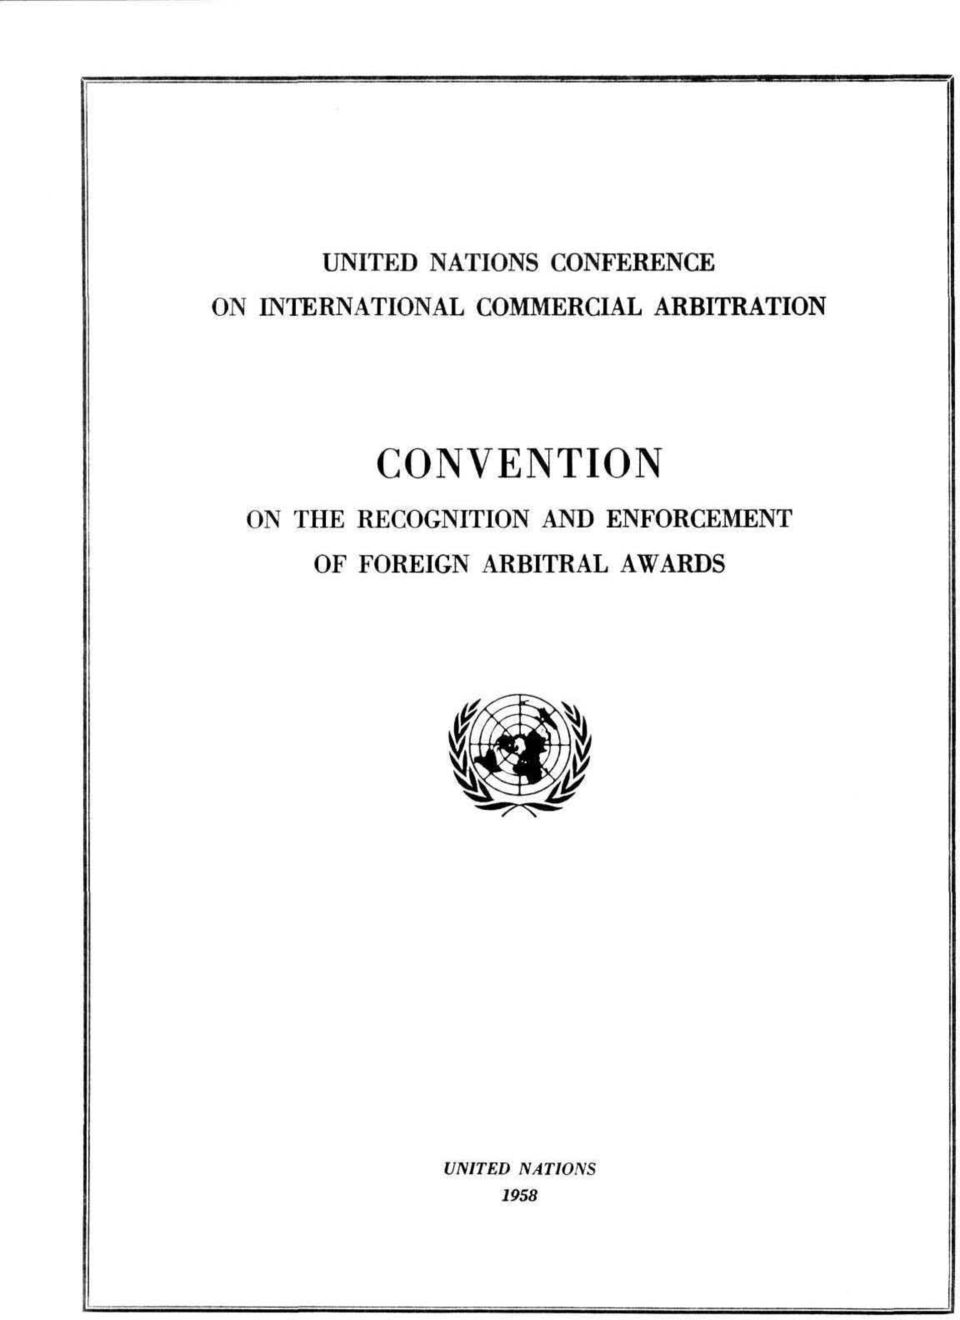 CONVENTION ON THE RECOGNITION AND